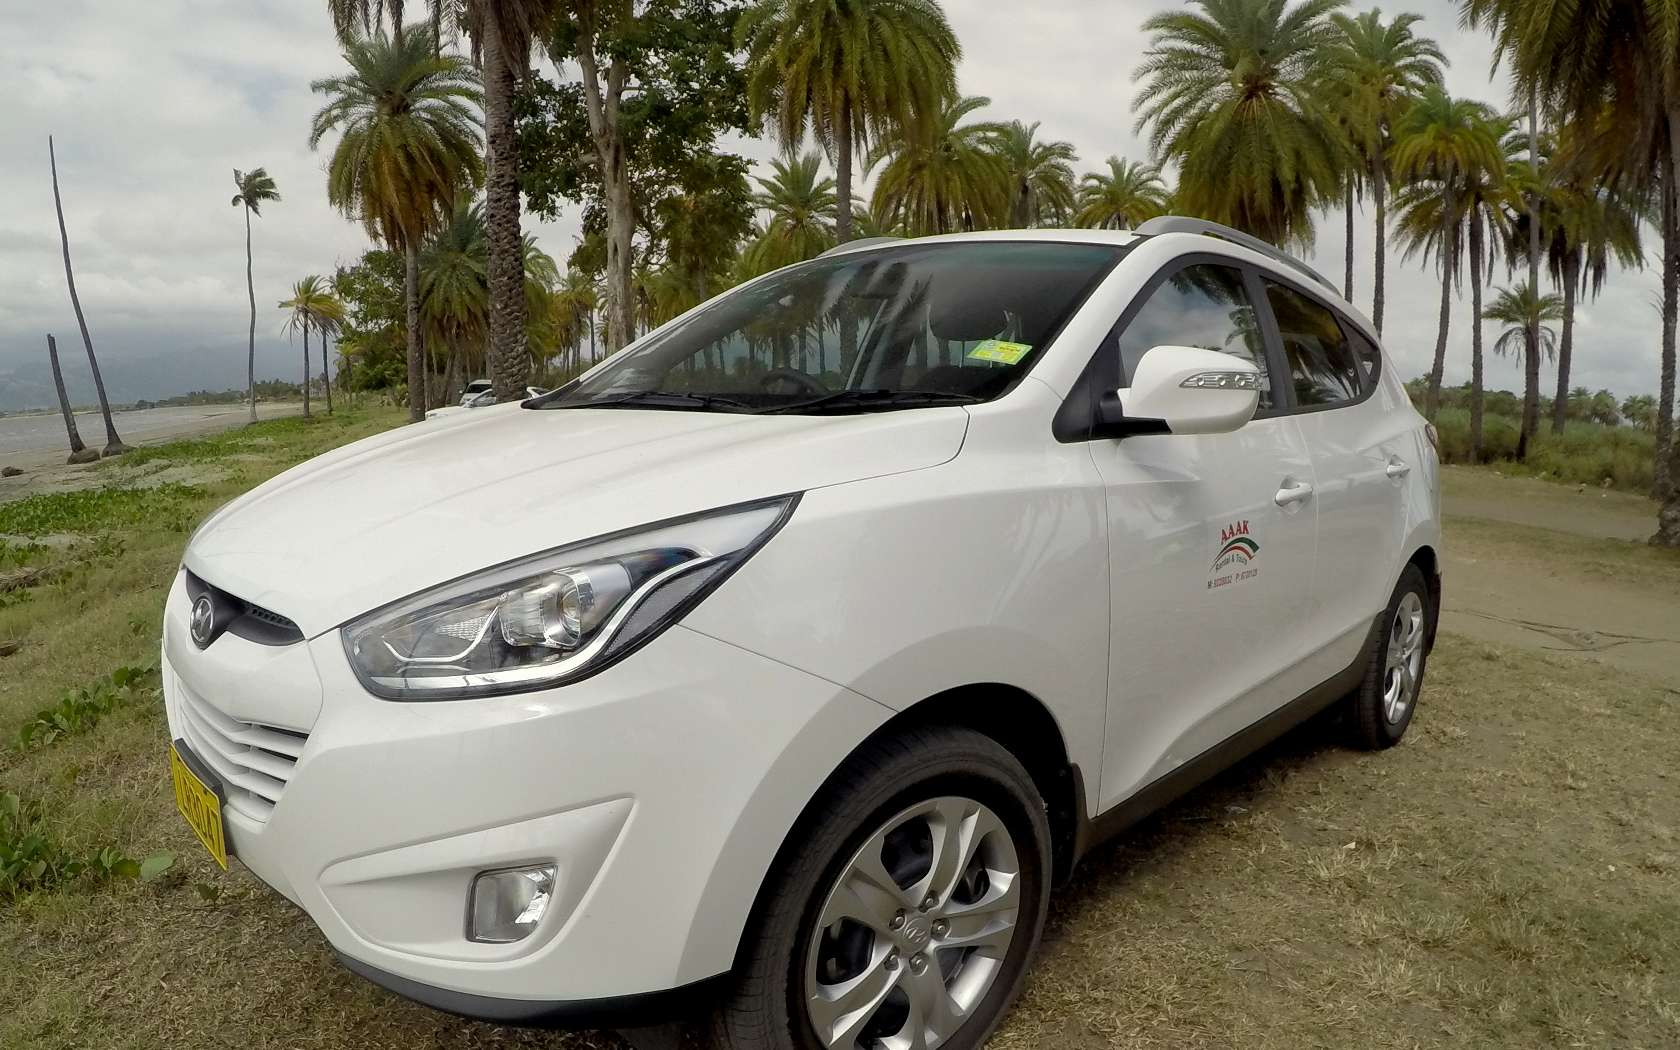 Car Rentals Tucson Az: Best Guide To All Transport In Fiji. From Boats To Planes